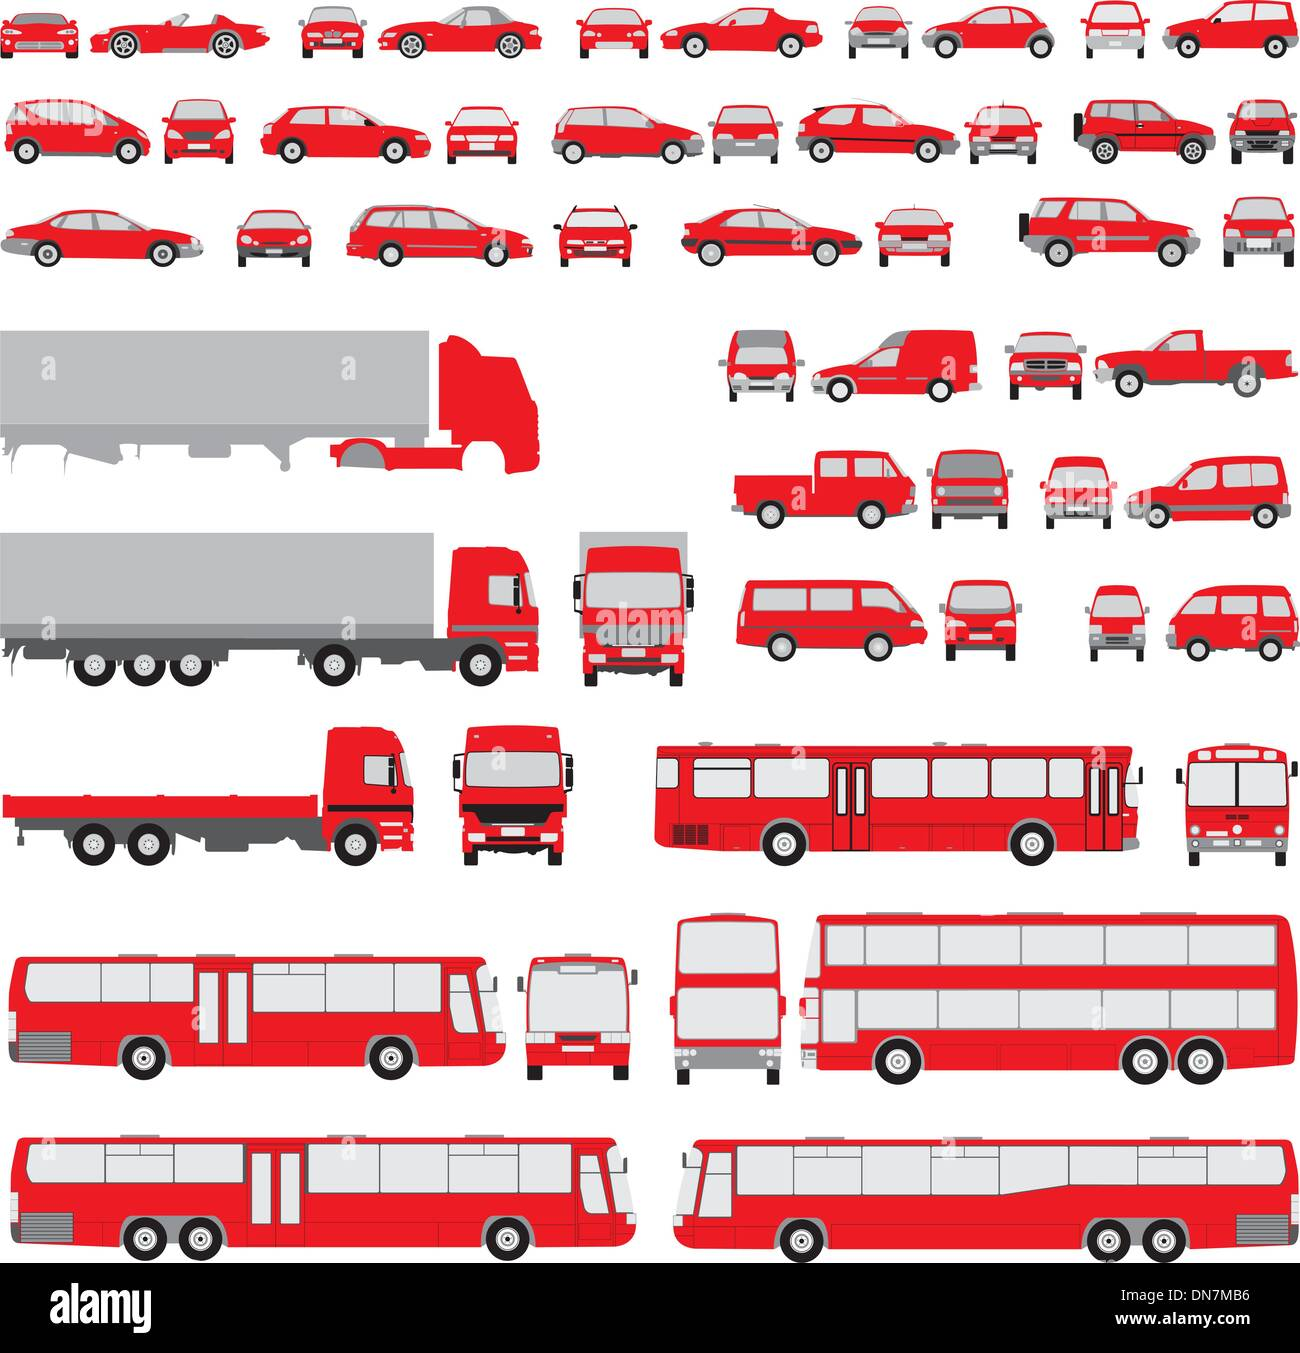 Vehicle-assorted silhouettes - Stock Image